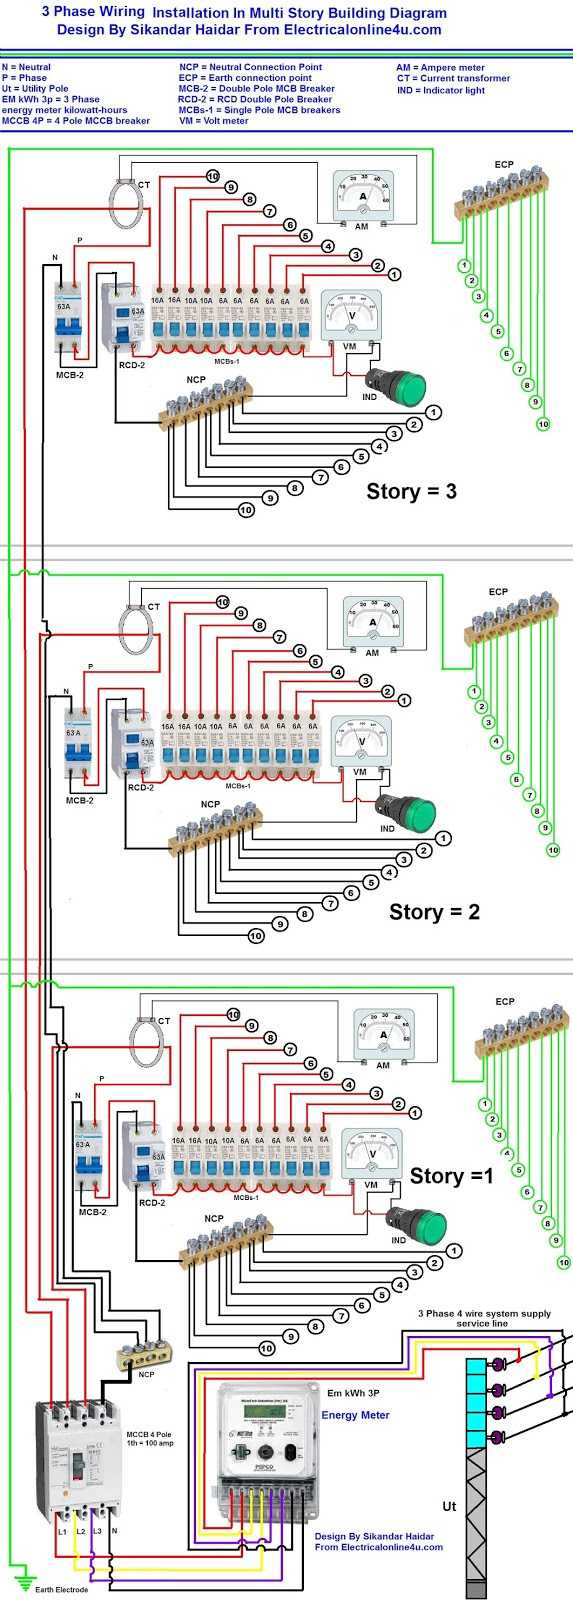 3 phase distribution board diagram for multi story house three phase electrical wiring installation in house home urdu hindi asfbconference2016 Image collections